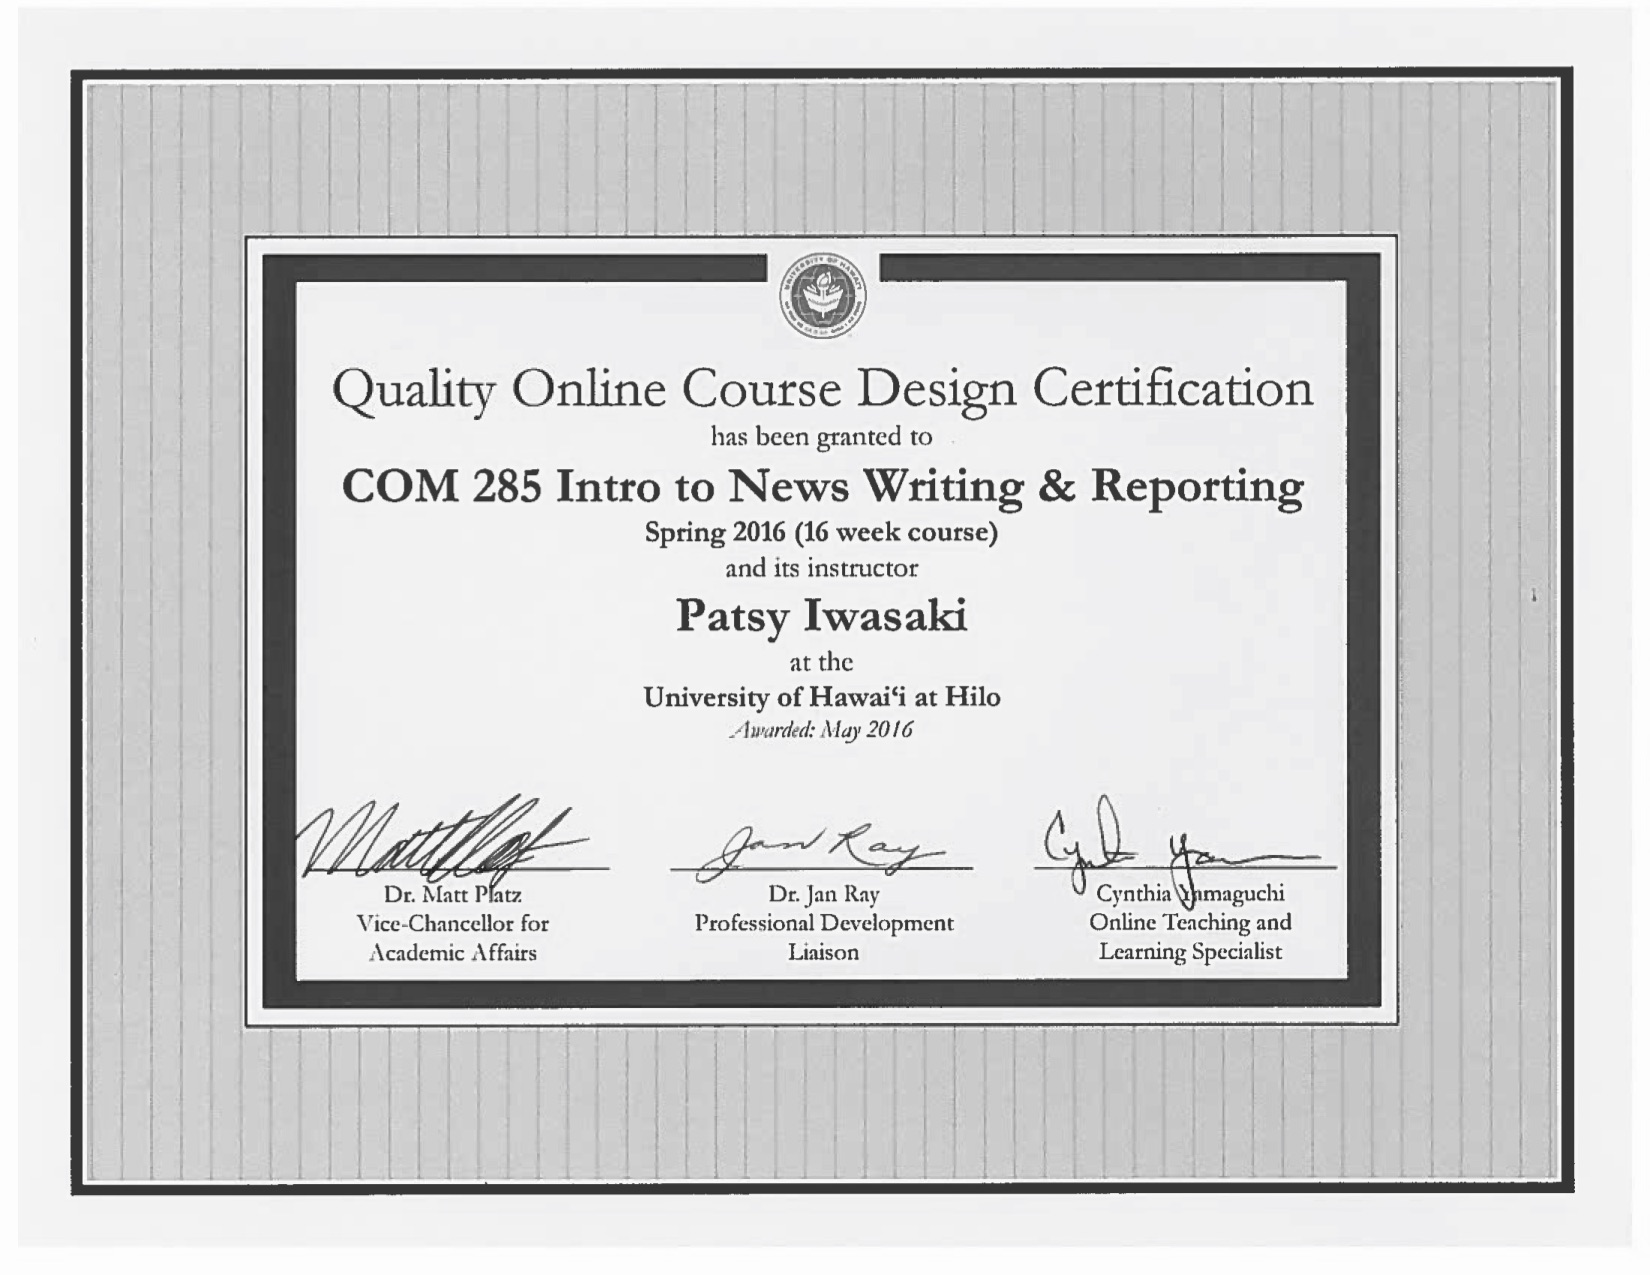 Quality Online Course Design Certificate, awarded to Patsy Iwasaki